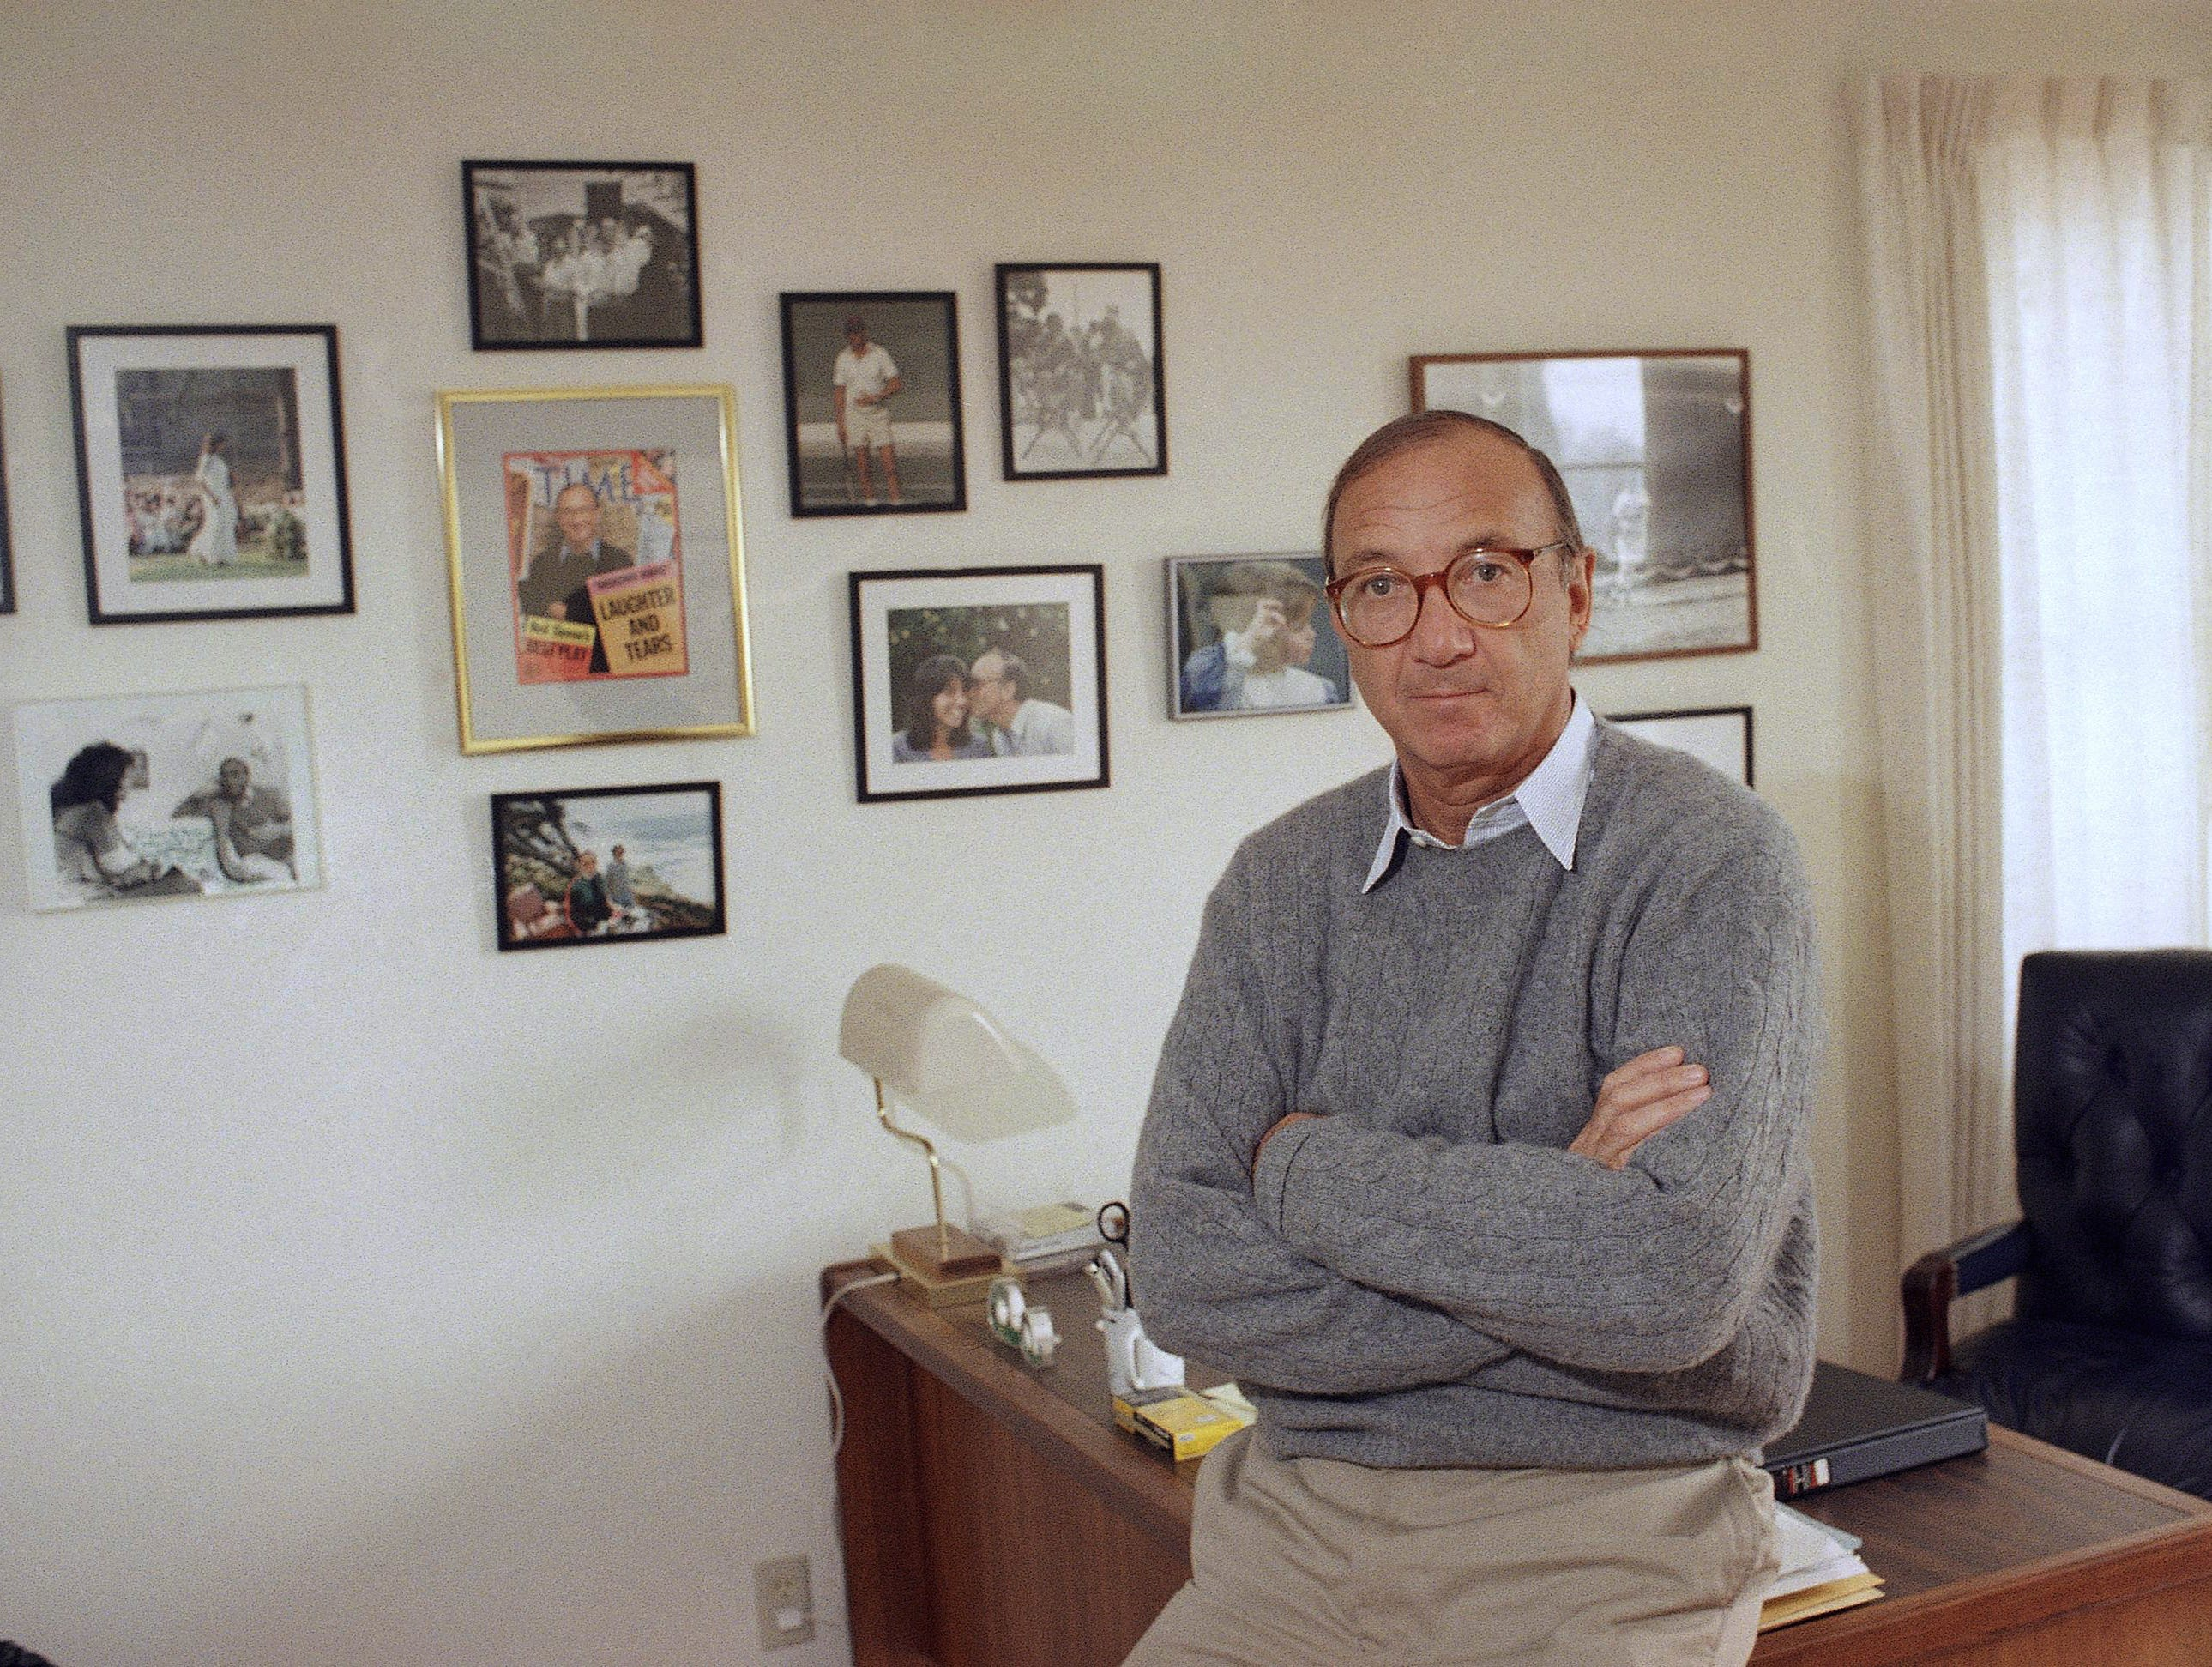 Playwright Neil Simon in his Los Angeles office, Wednesday, March 9, 1988. (AP Photo/Ira Mark Gostin)